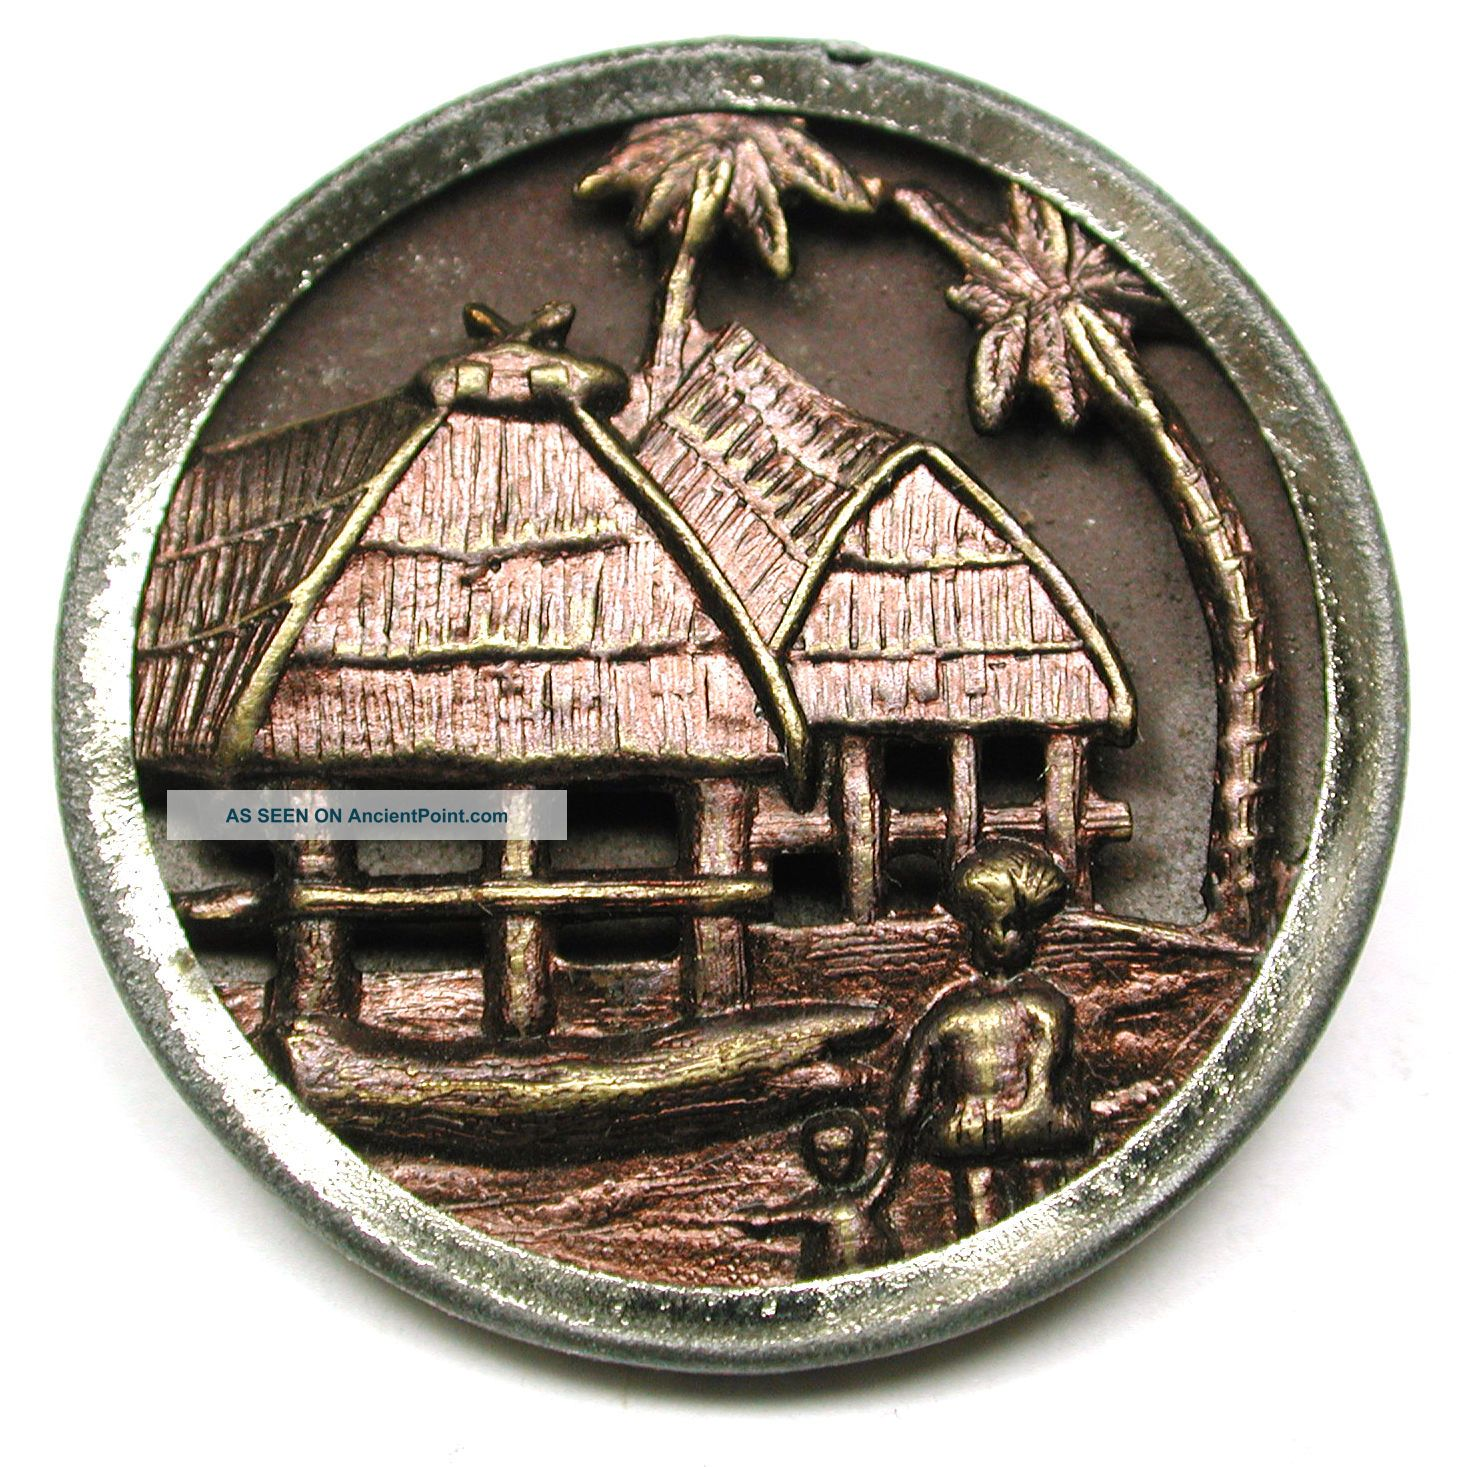 Antique Brass Button South Pacific Natives & Thatched Huts Scene - 1 & 3/16